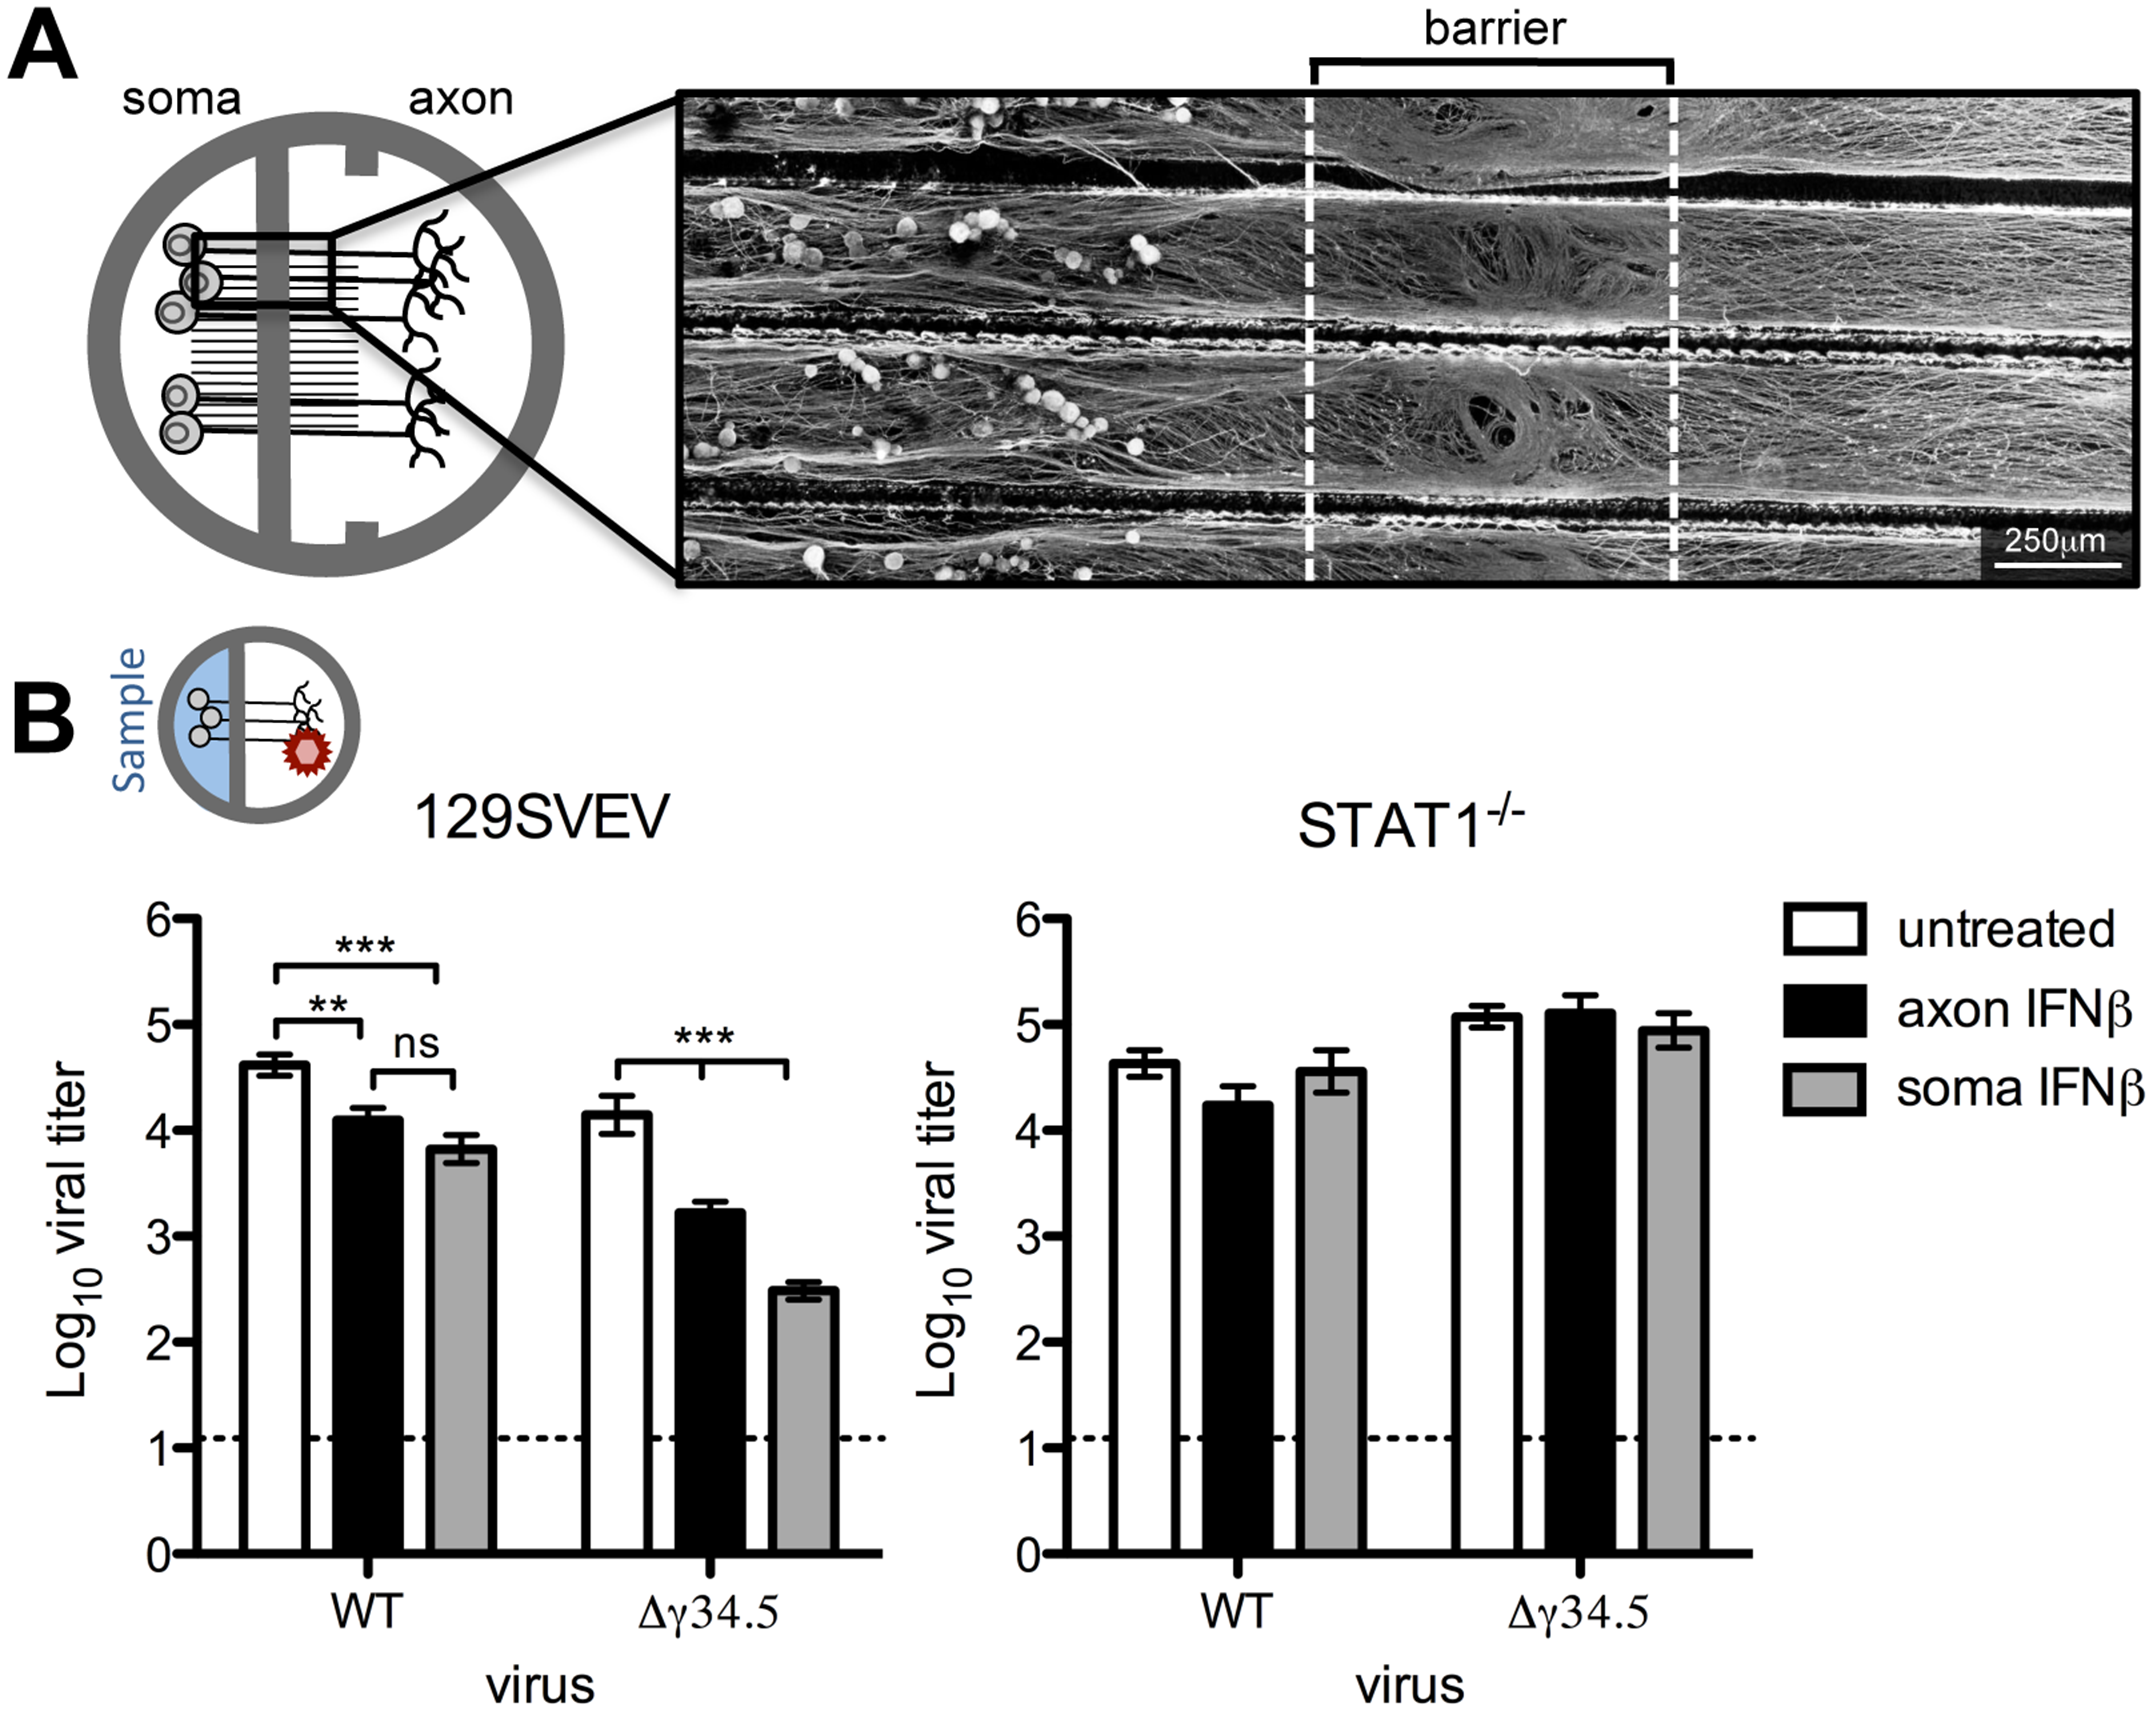 Paracrine IFNβ signaling at the cell body and distal axon reduces HSV-1 titers upon axonal infection.